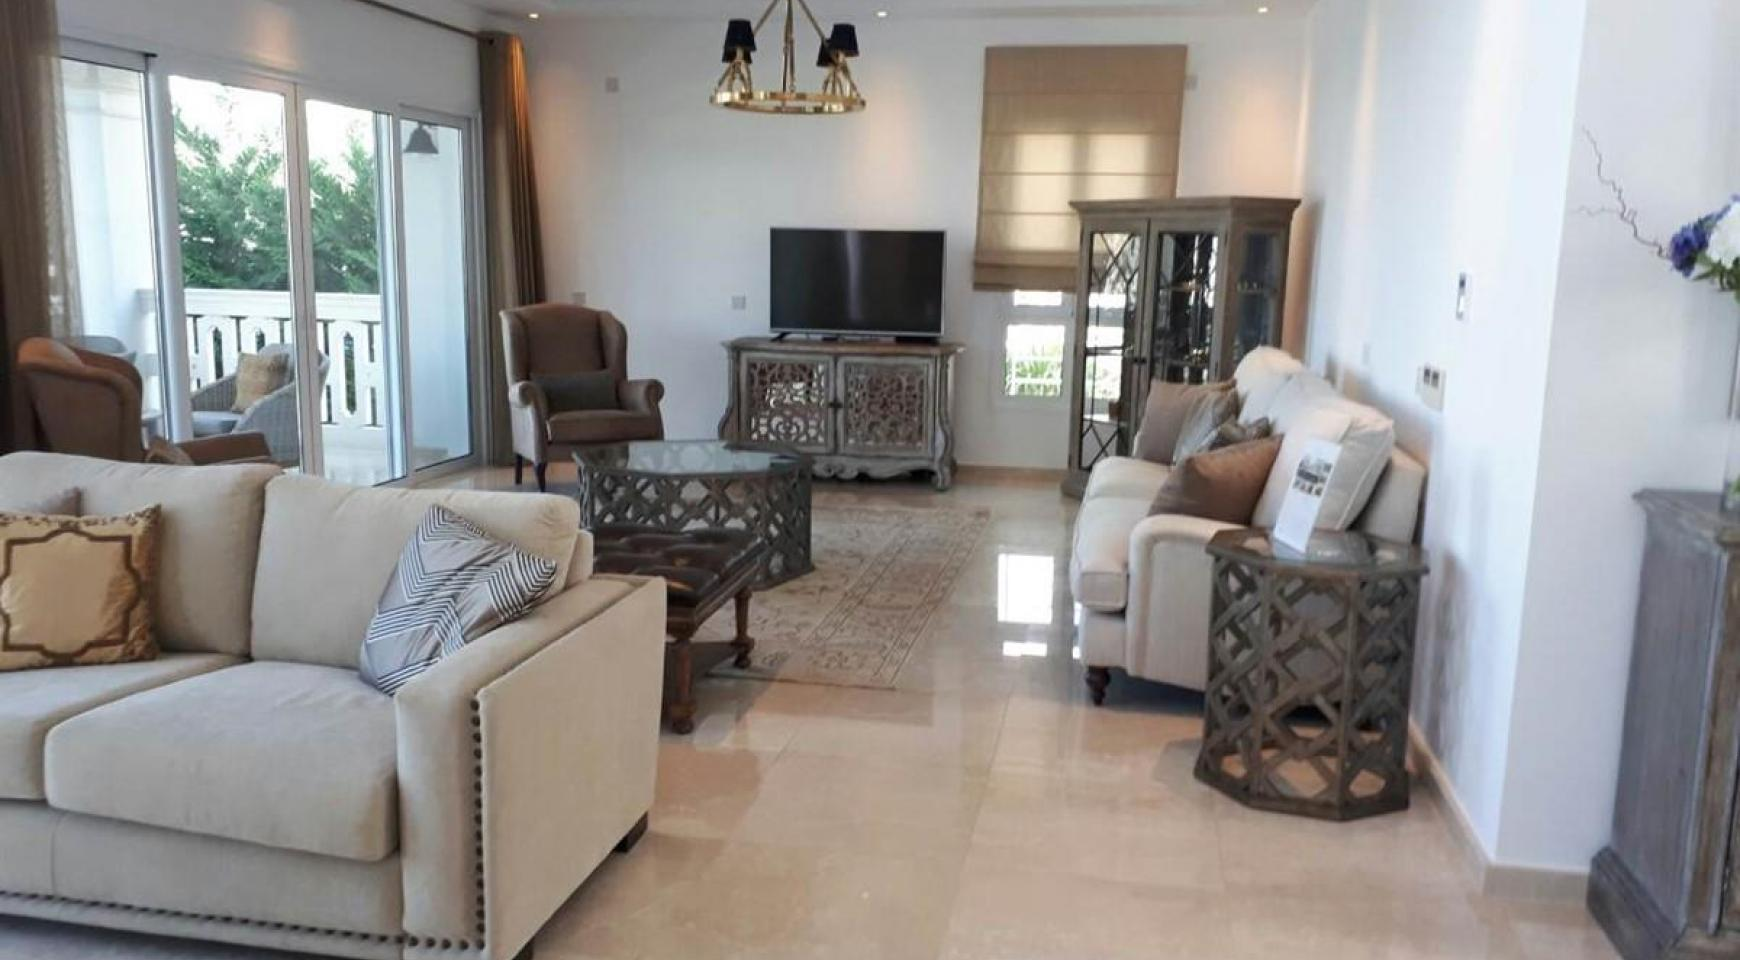 Elite 3 Bedroom Villa within an Exclusive Development by the Sea - 13